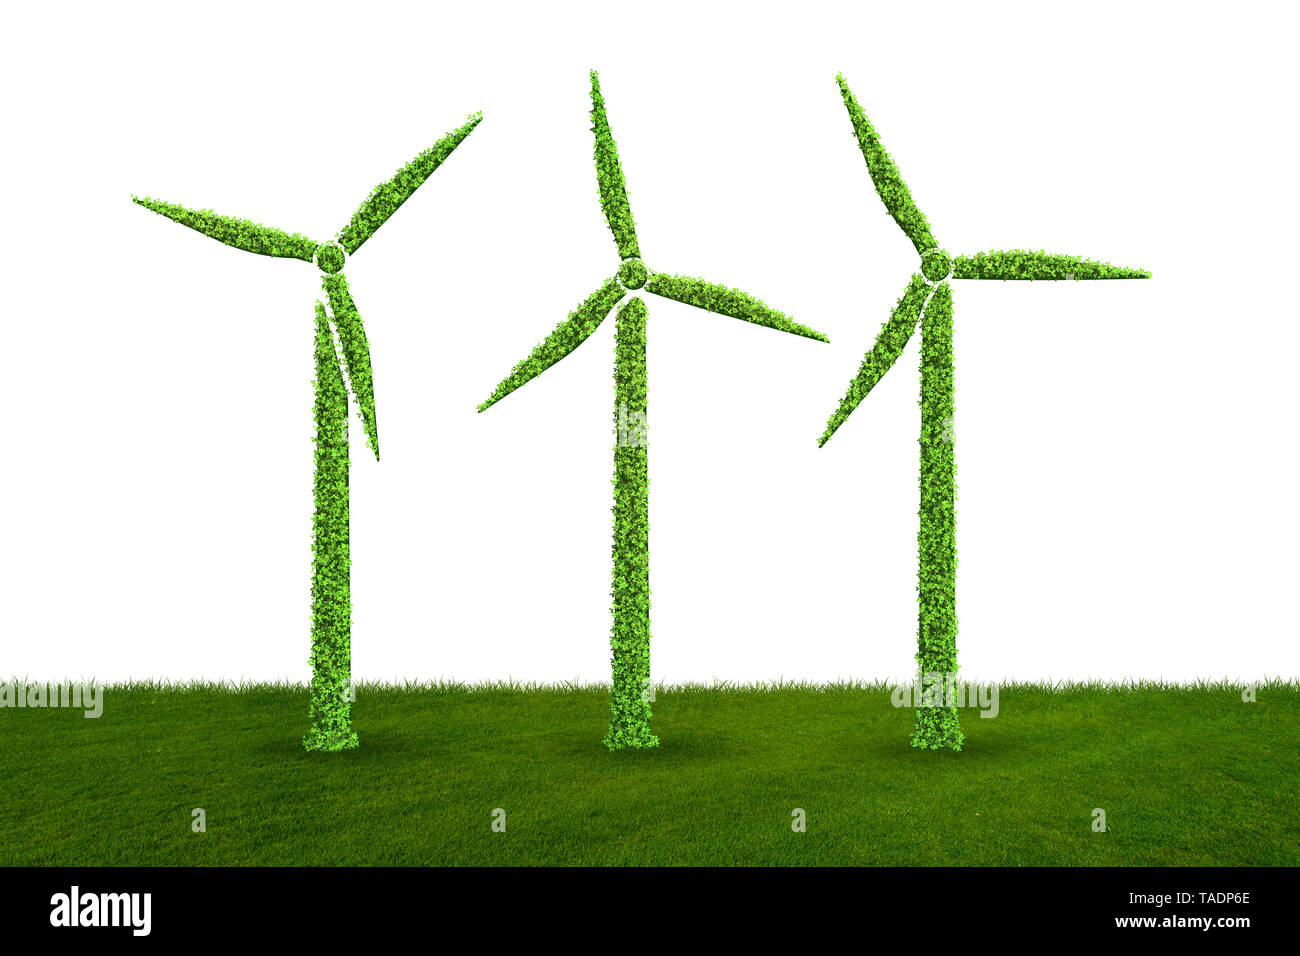 Windmills in ecological power generation and production concept - 3d rendering - Stock Image